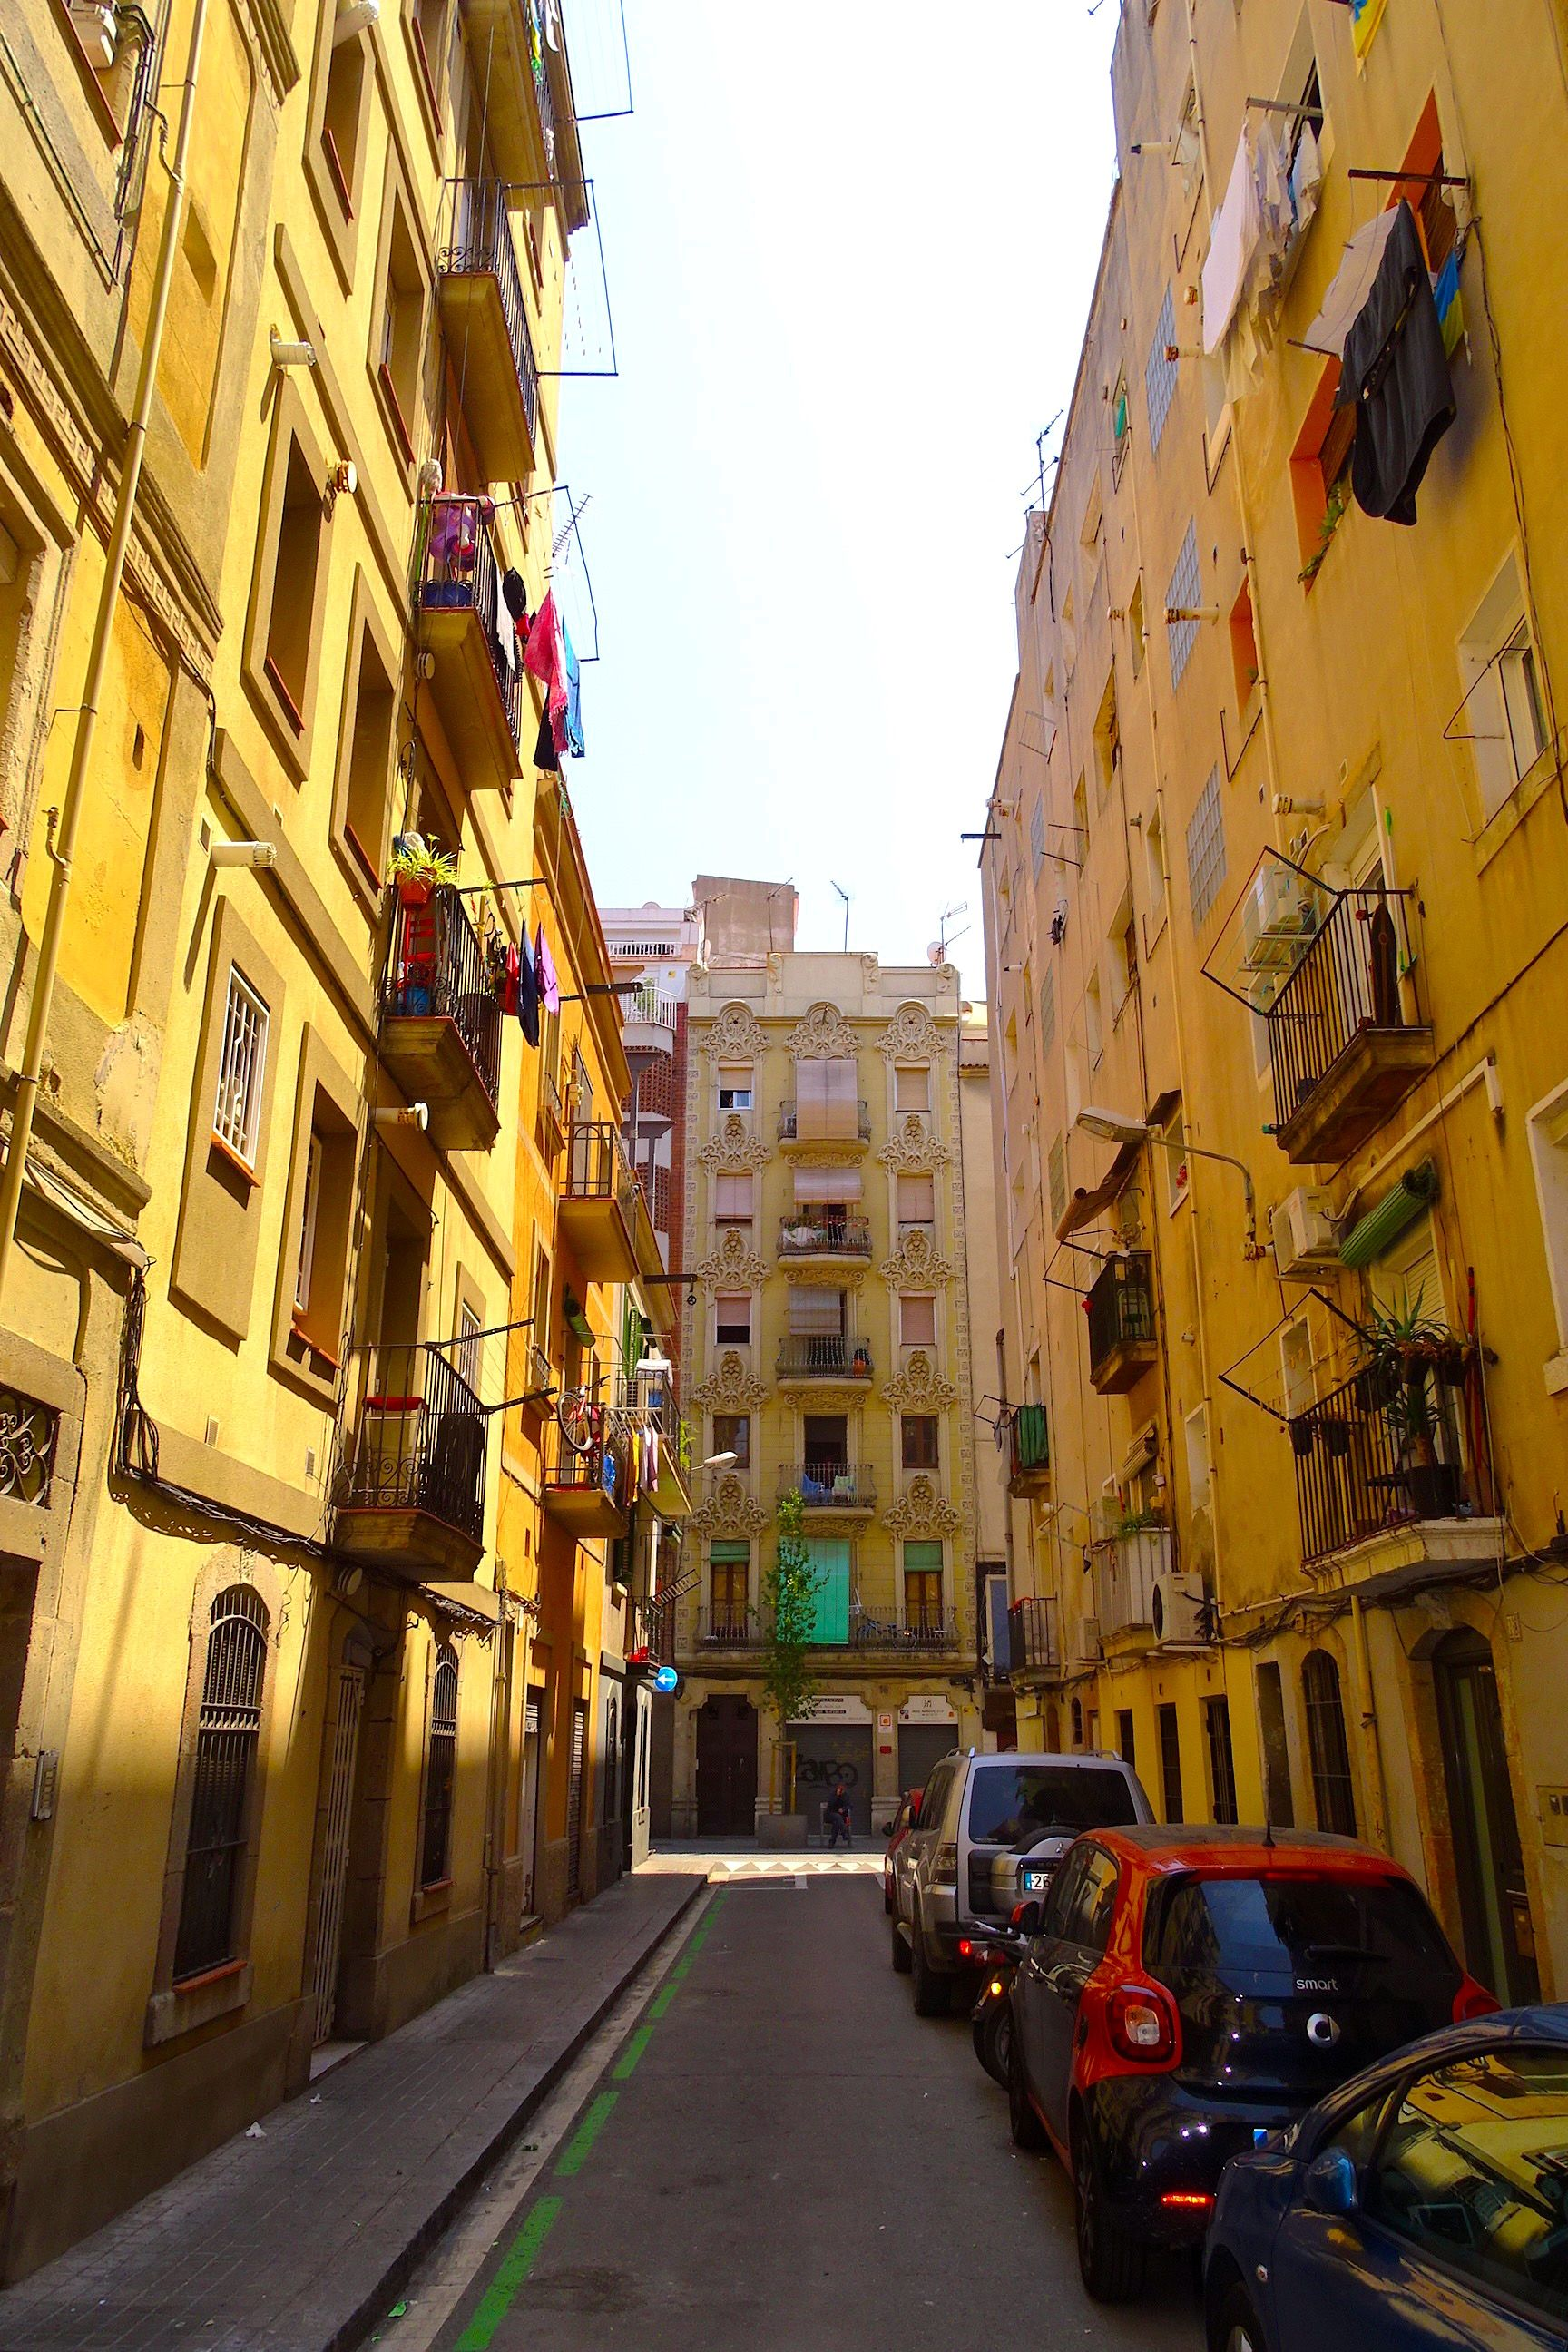 Love Strolling The Streets Of Barcelona There Is So Much Color And Style A Quiet Day In Barcelona Is Pictured Her Spain Tour Visit Barcelona Barcelona Travel